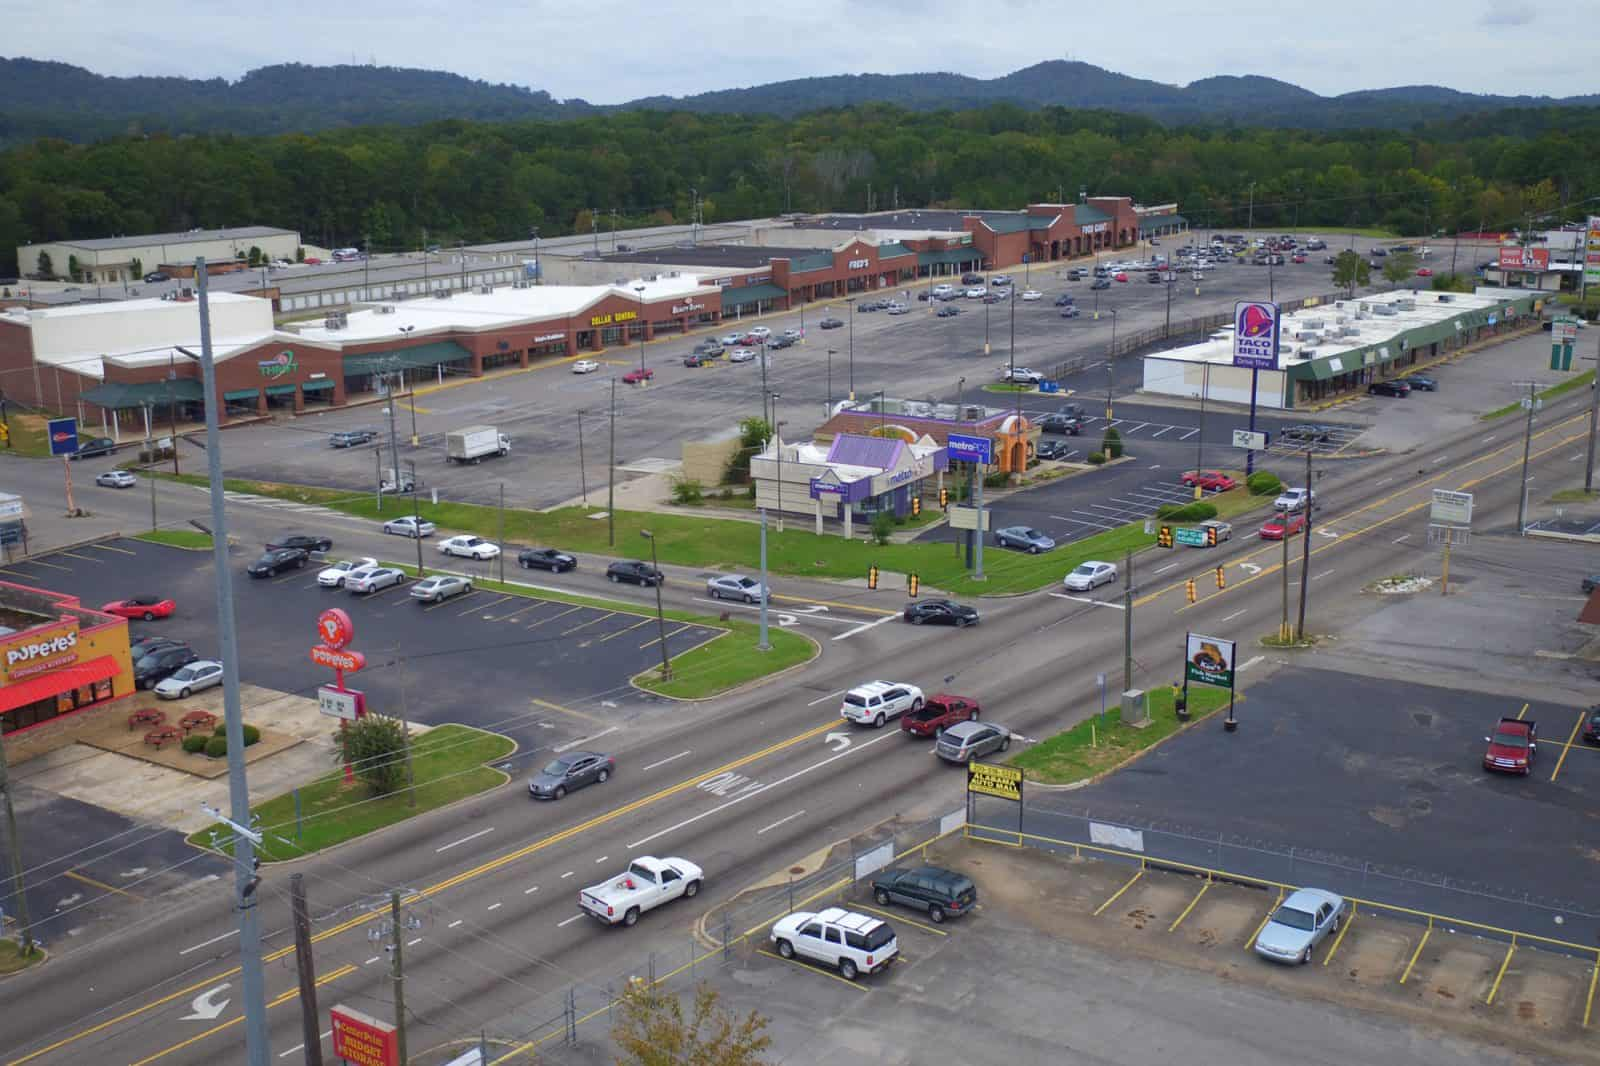 drone photo of shopping plaza and storefronts